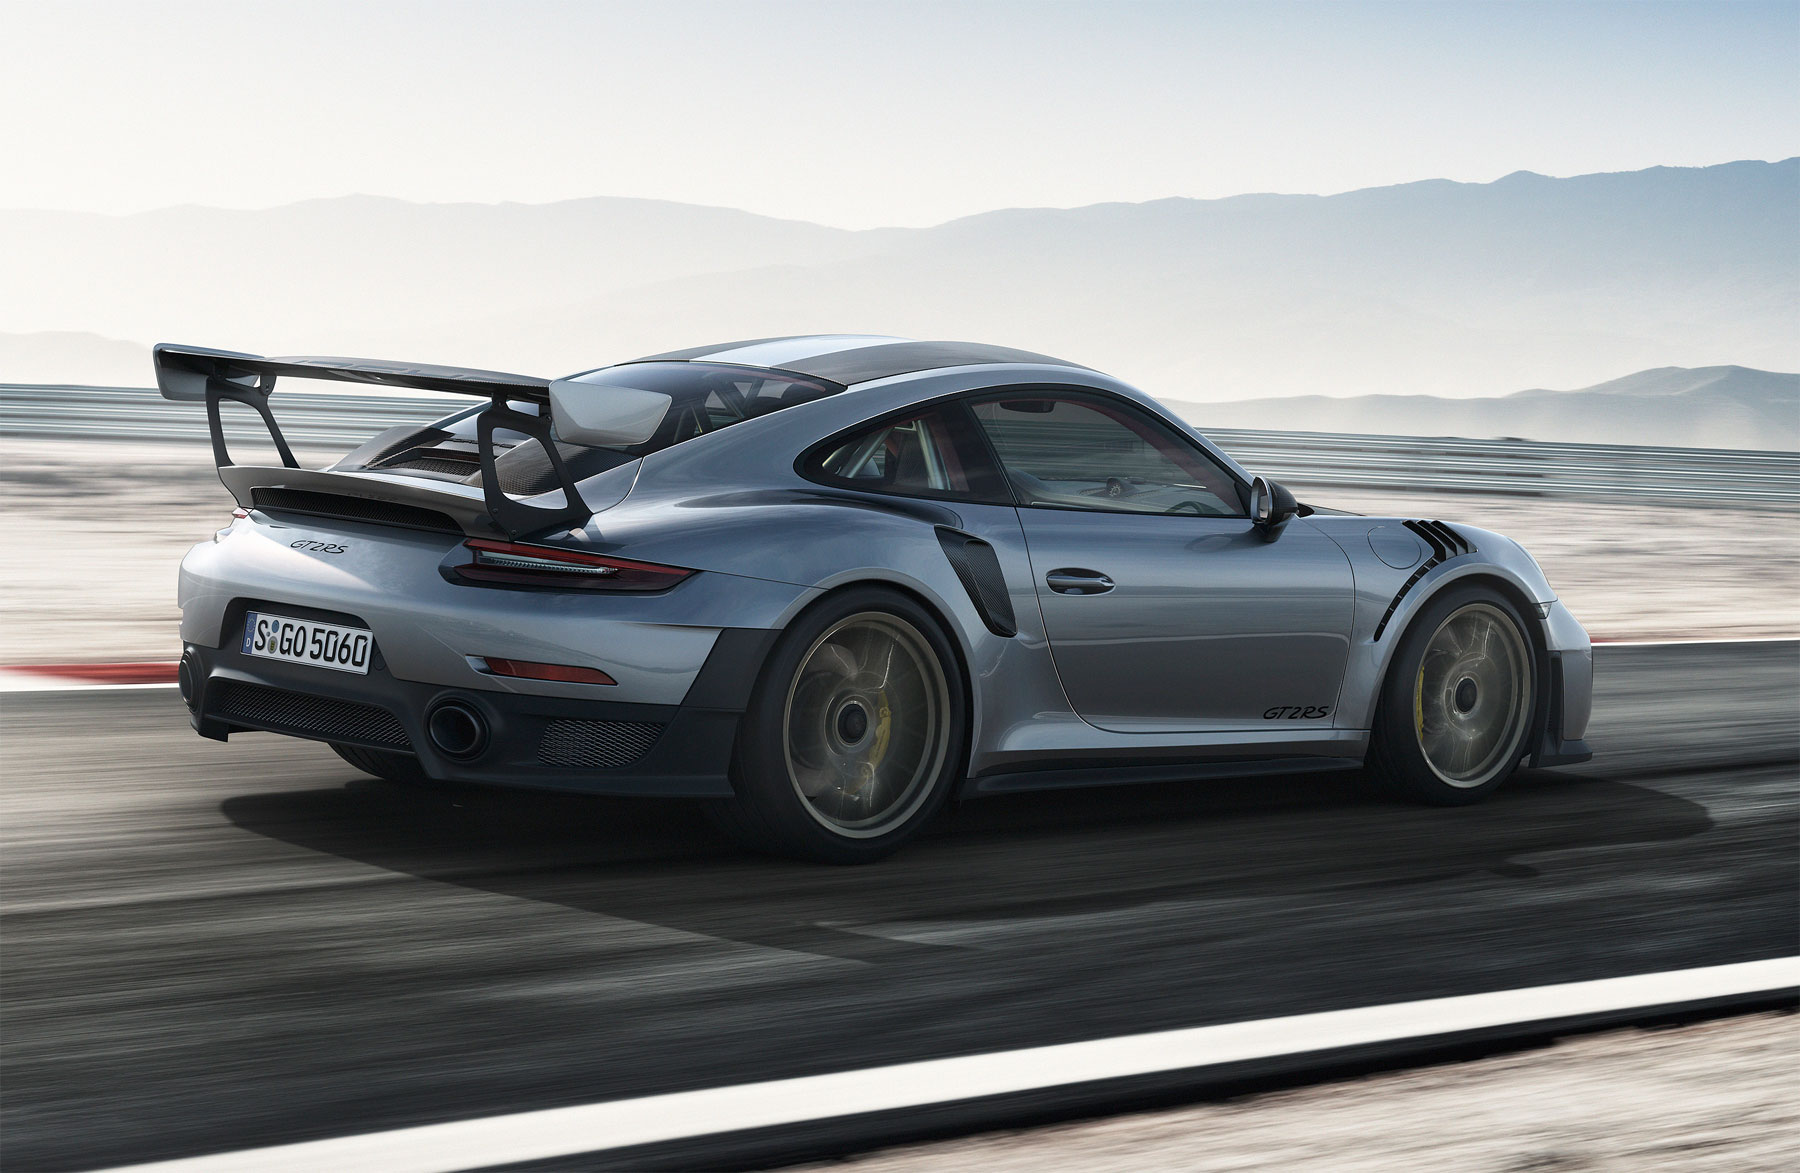 Inside the Porsche 911 GT2 RS, the Most Powerful 911 To Date 5